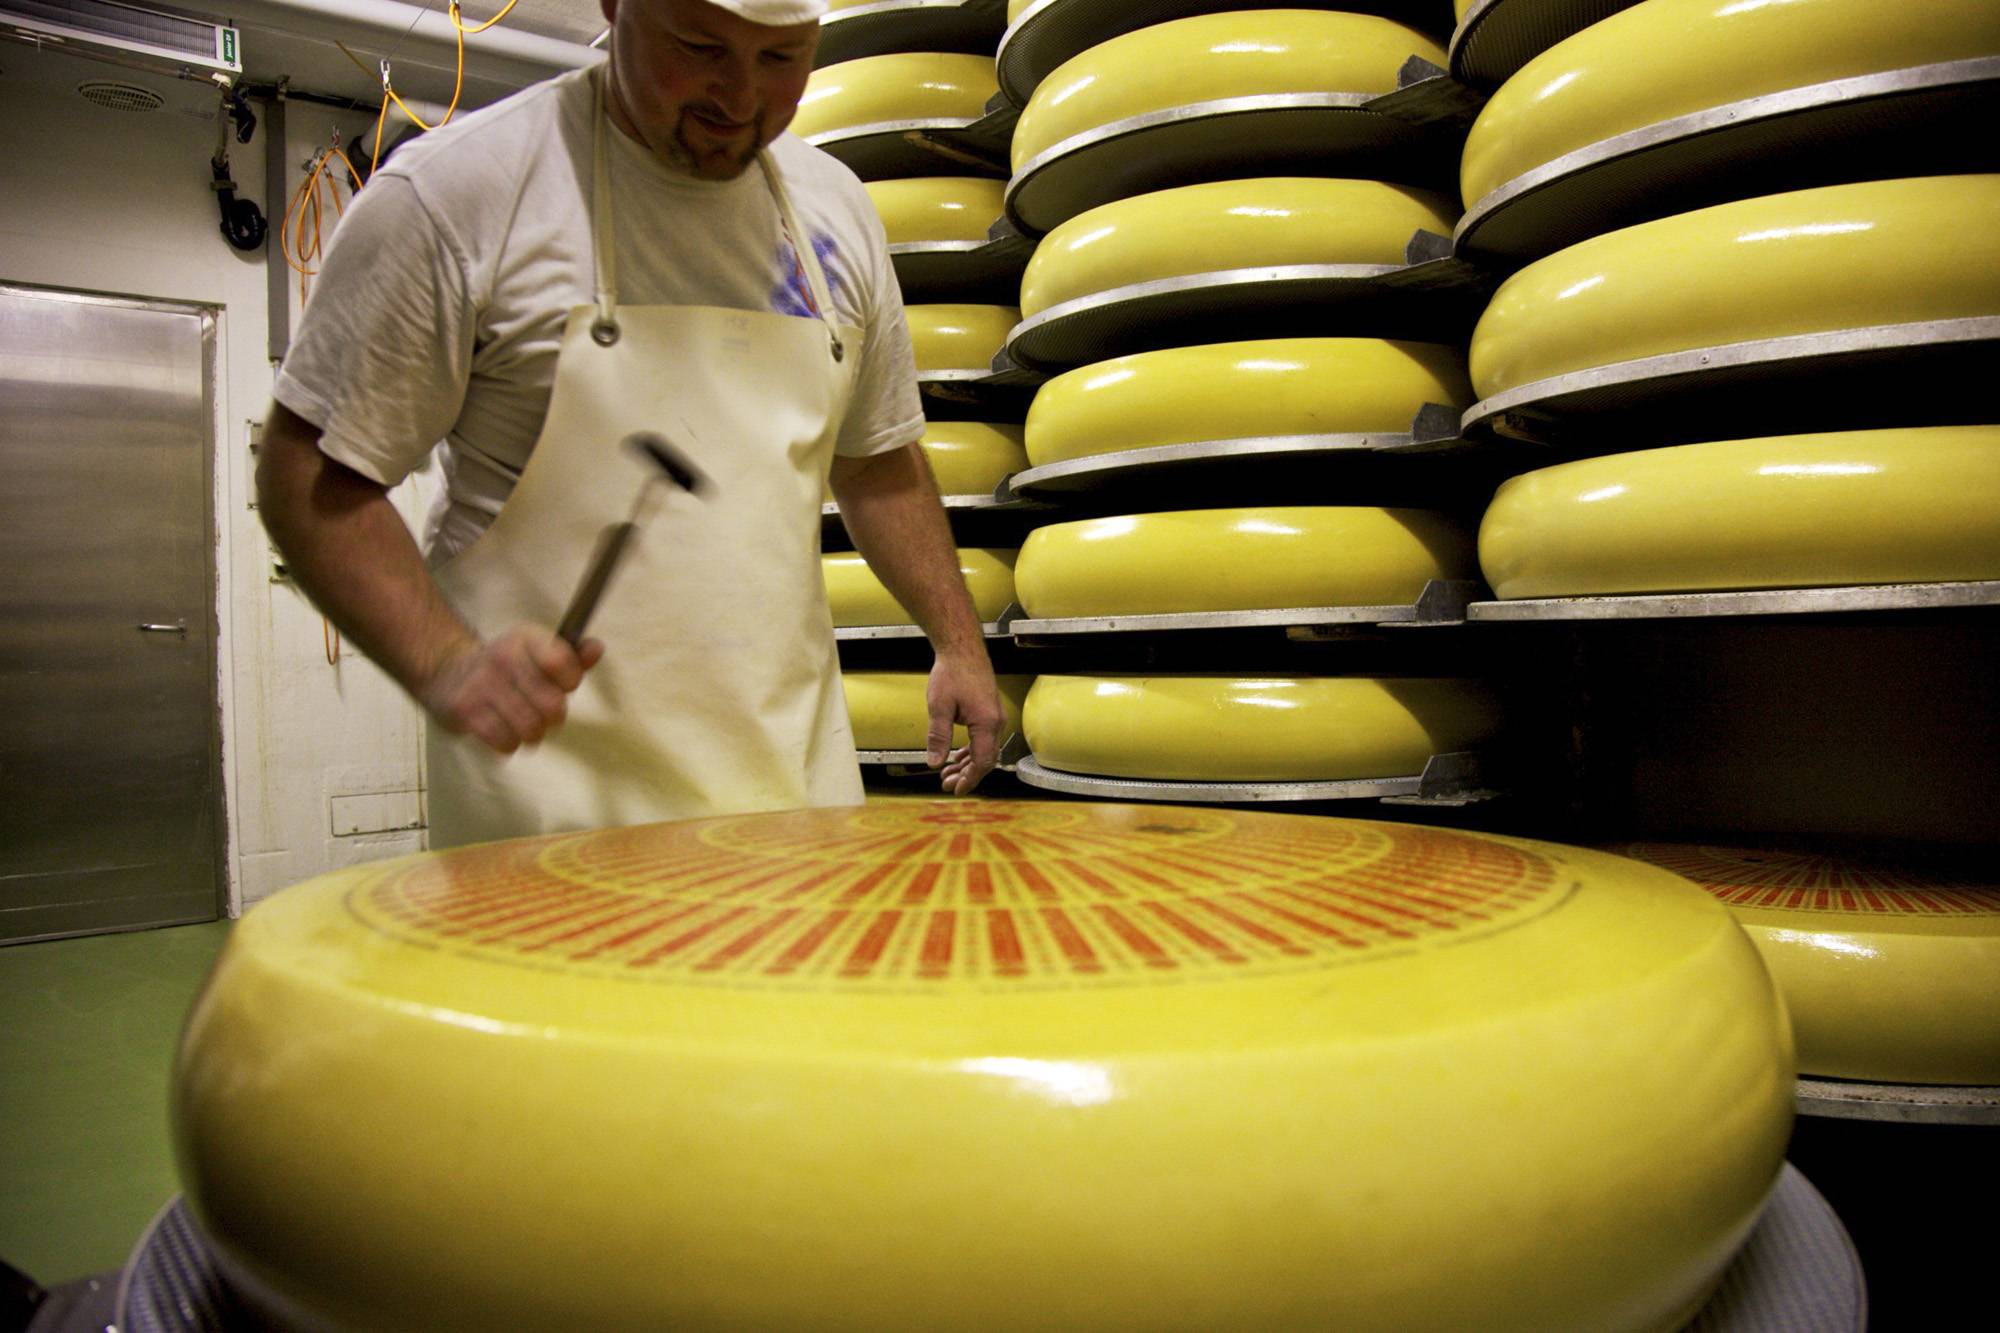 An employee tests a whole Emmentaler Switzerland AOC cheese for holes in the salting cellar at the Hupfenboden dairy in Trubschachen,  Switzerland,  in 2011. Since Vladimir Putinís government banned many food imports from nations supporting sanctions due to the countryís role in the Ukraine crisis, neutral Switzerland finds itself with an edge in selling cheese to 142.5 million Russians.